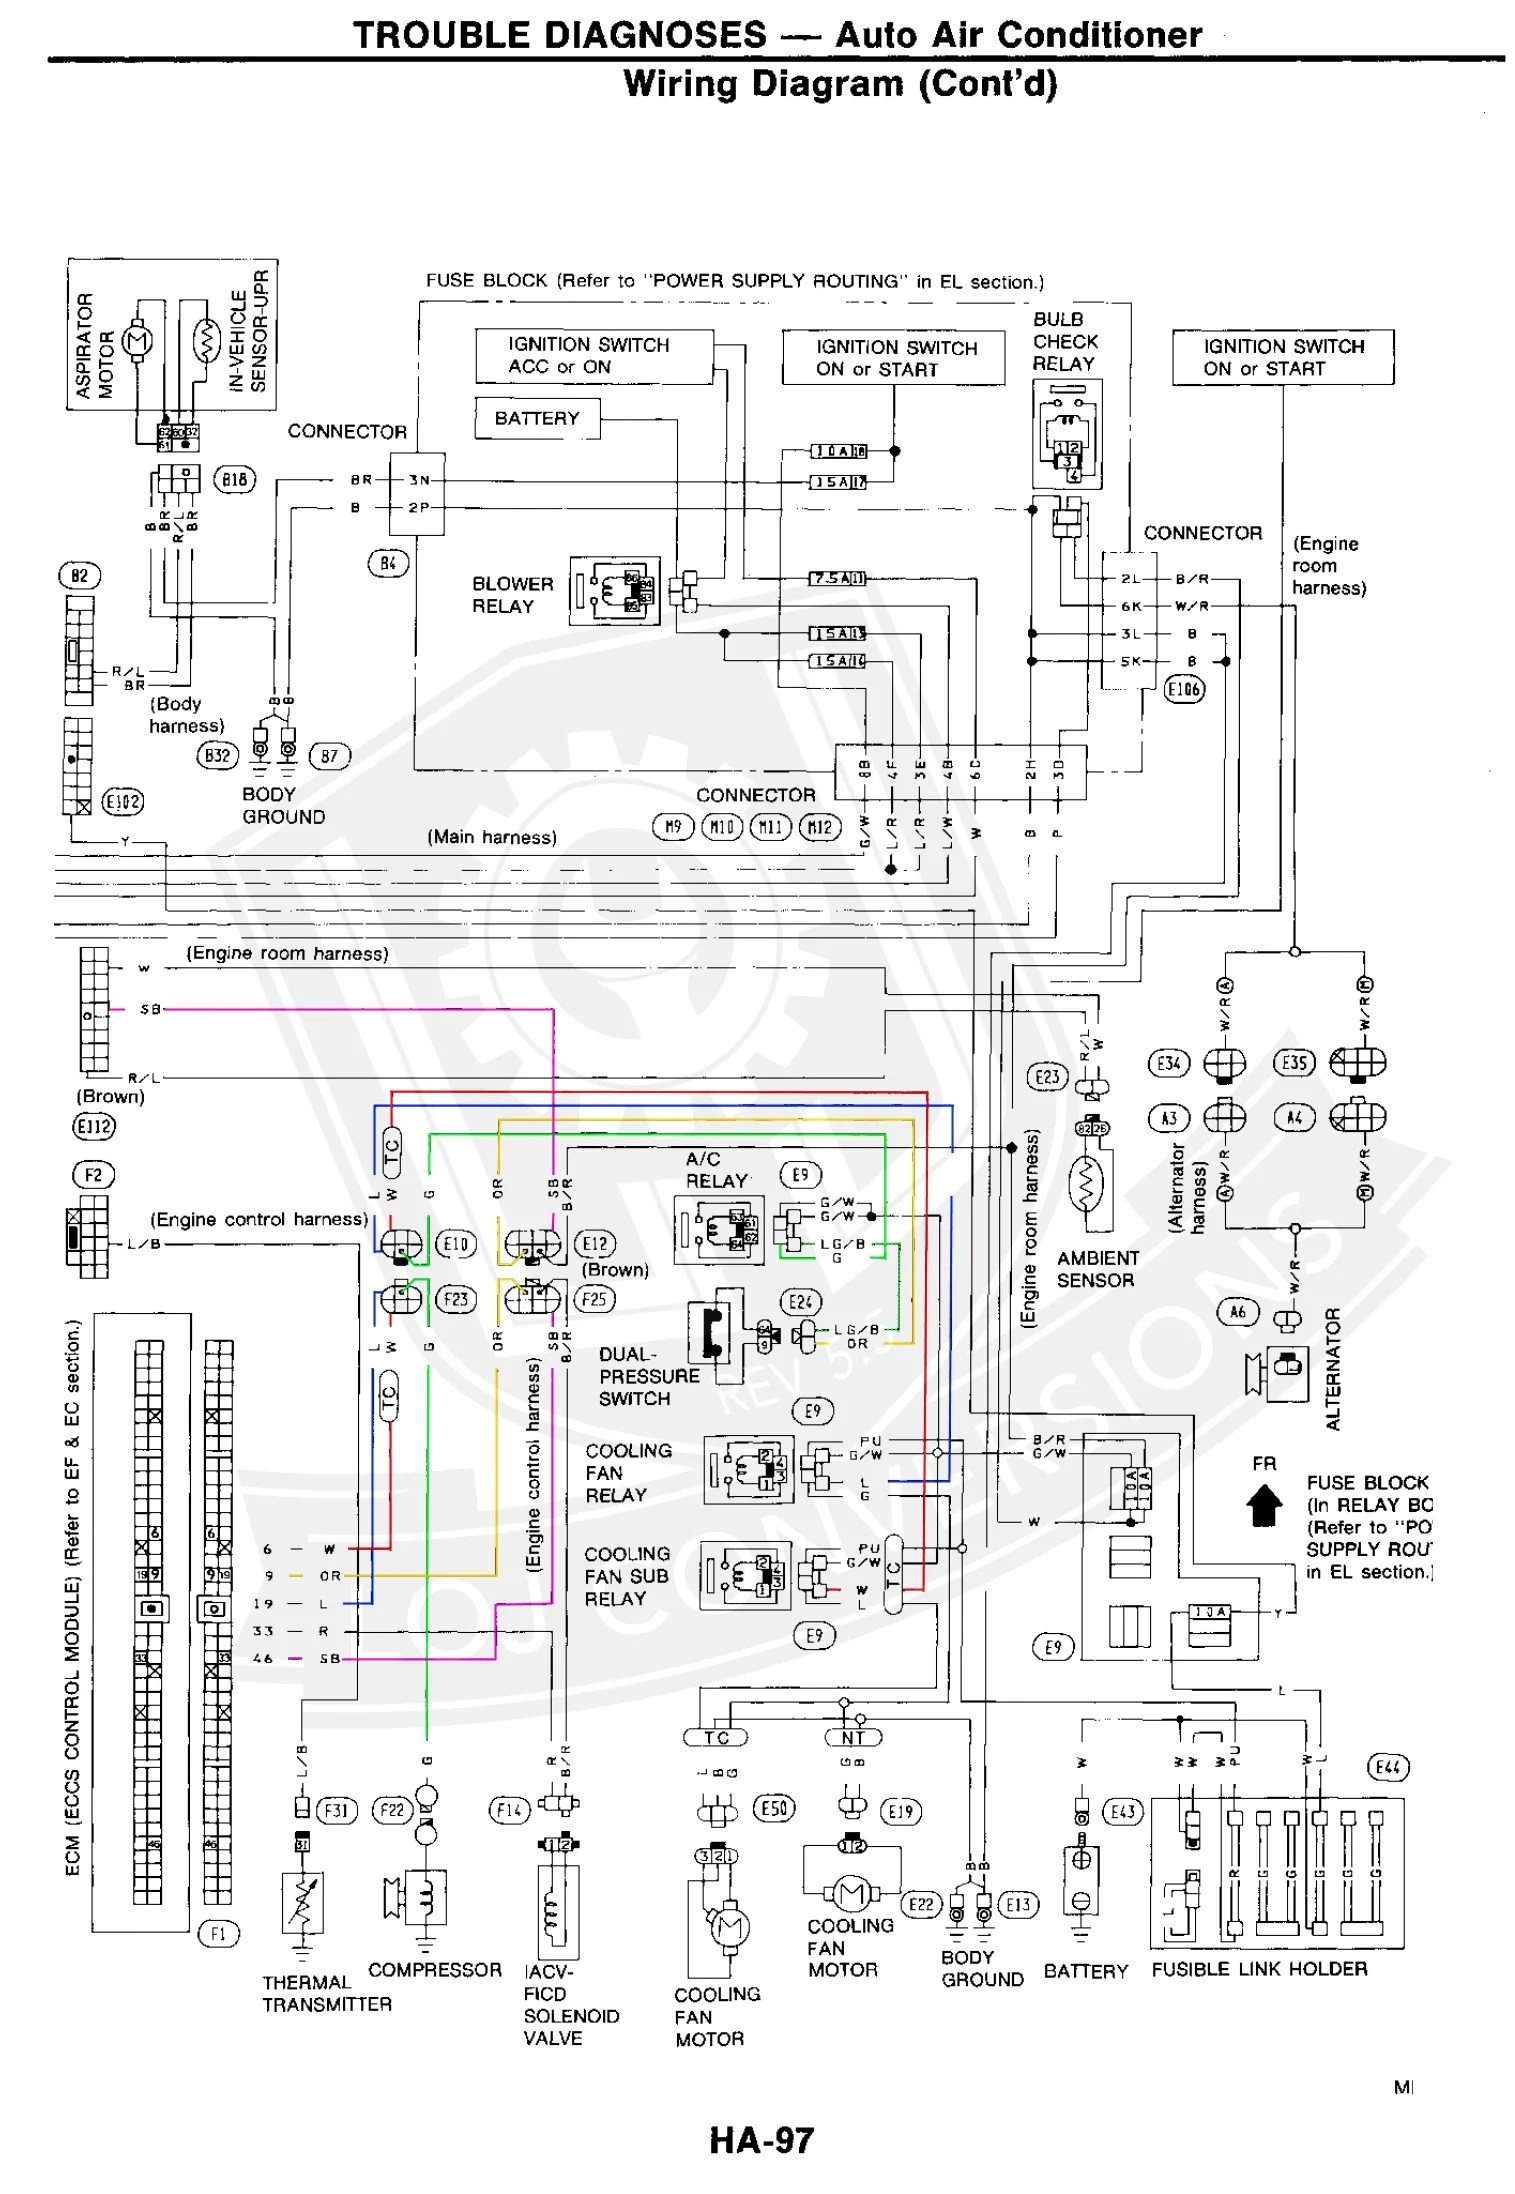 medium resolution of 300zx wire diagram wiring diagrams konsult 1990 300zx harness layout